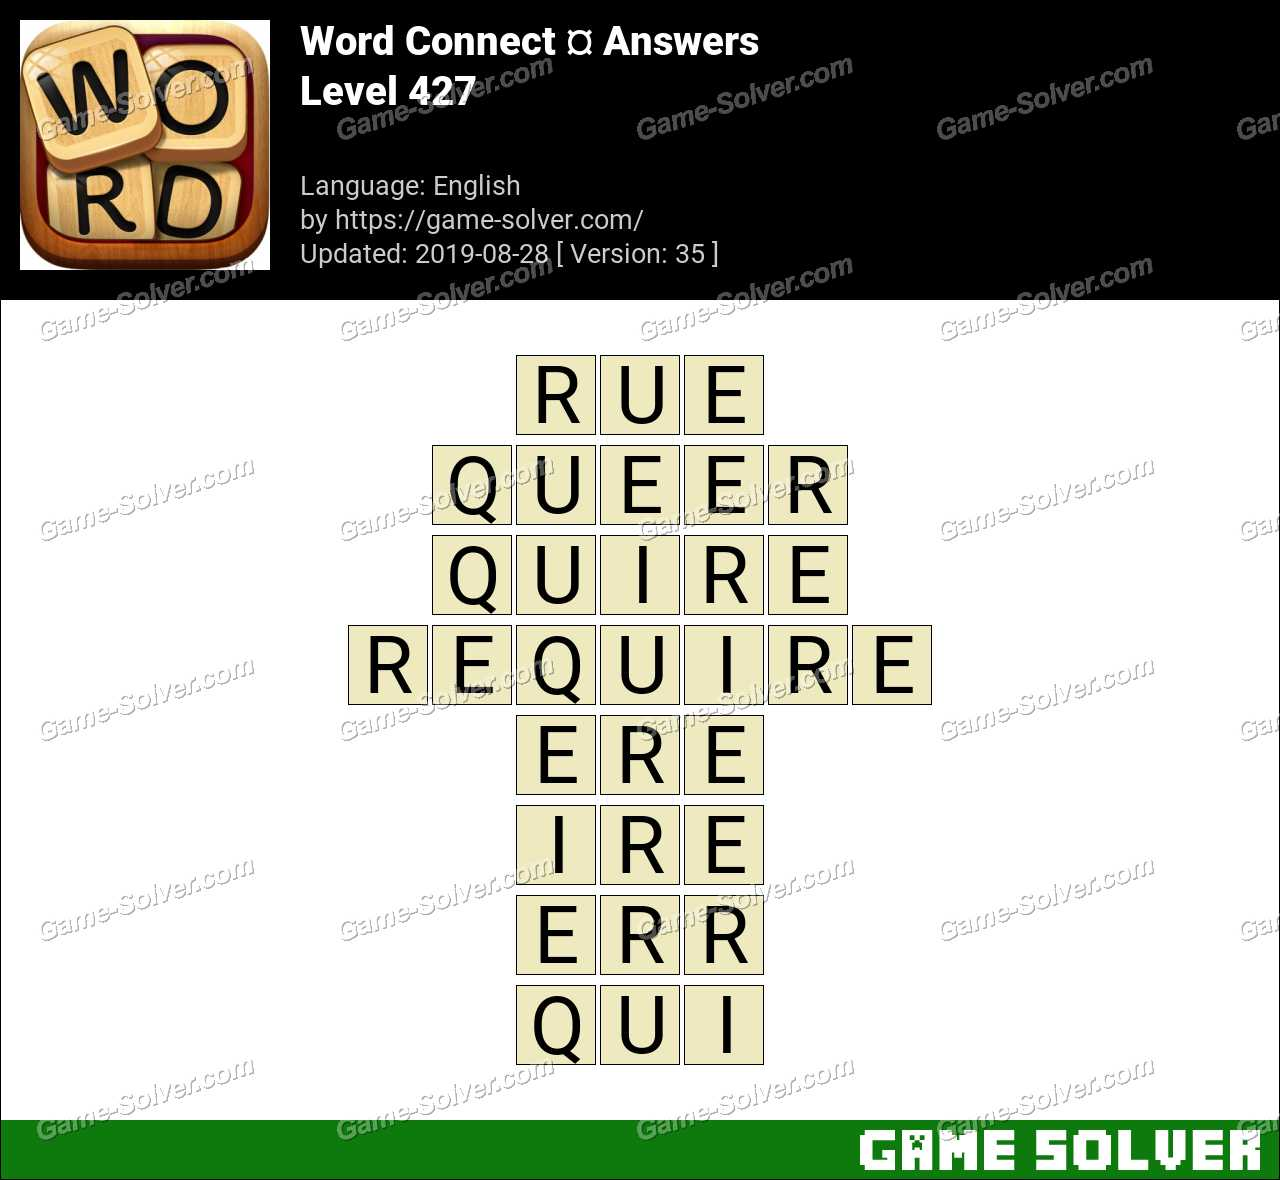 Word Connect Level 427 Answers